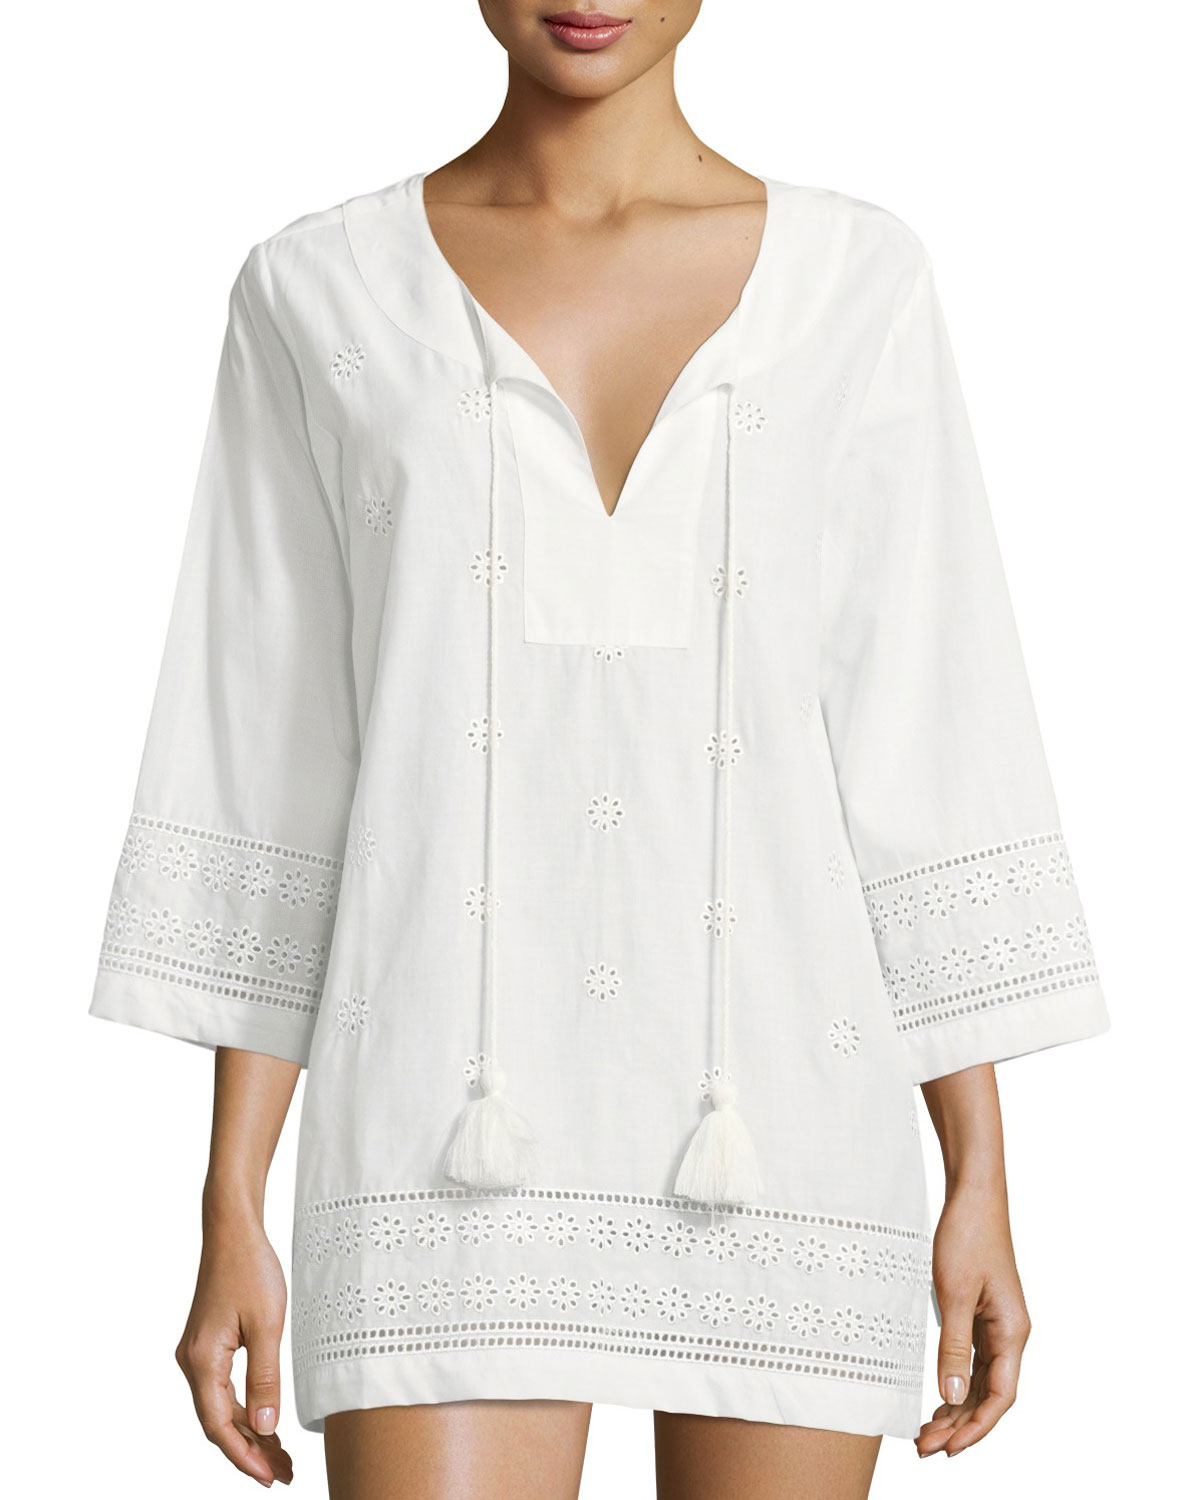 isal vista v-neck embroidered eyelet coverup tunic